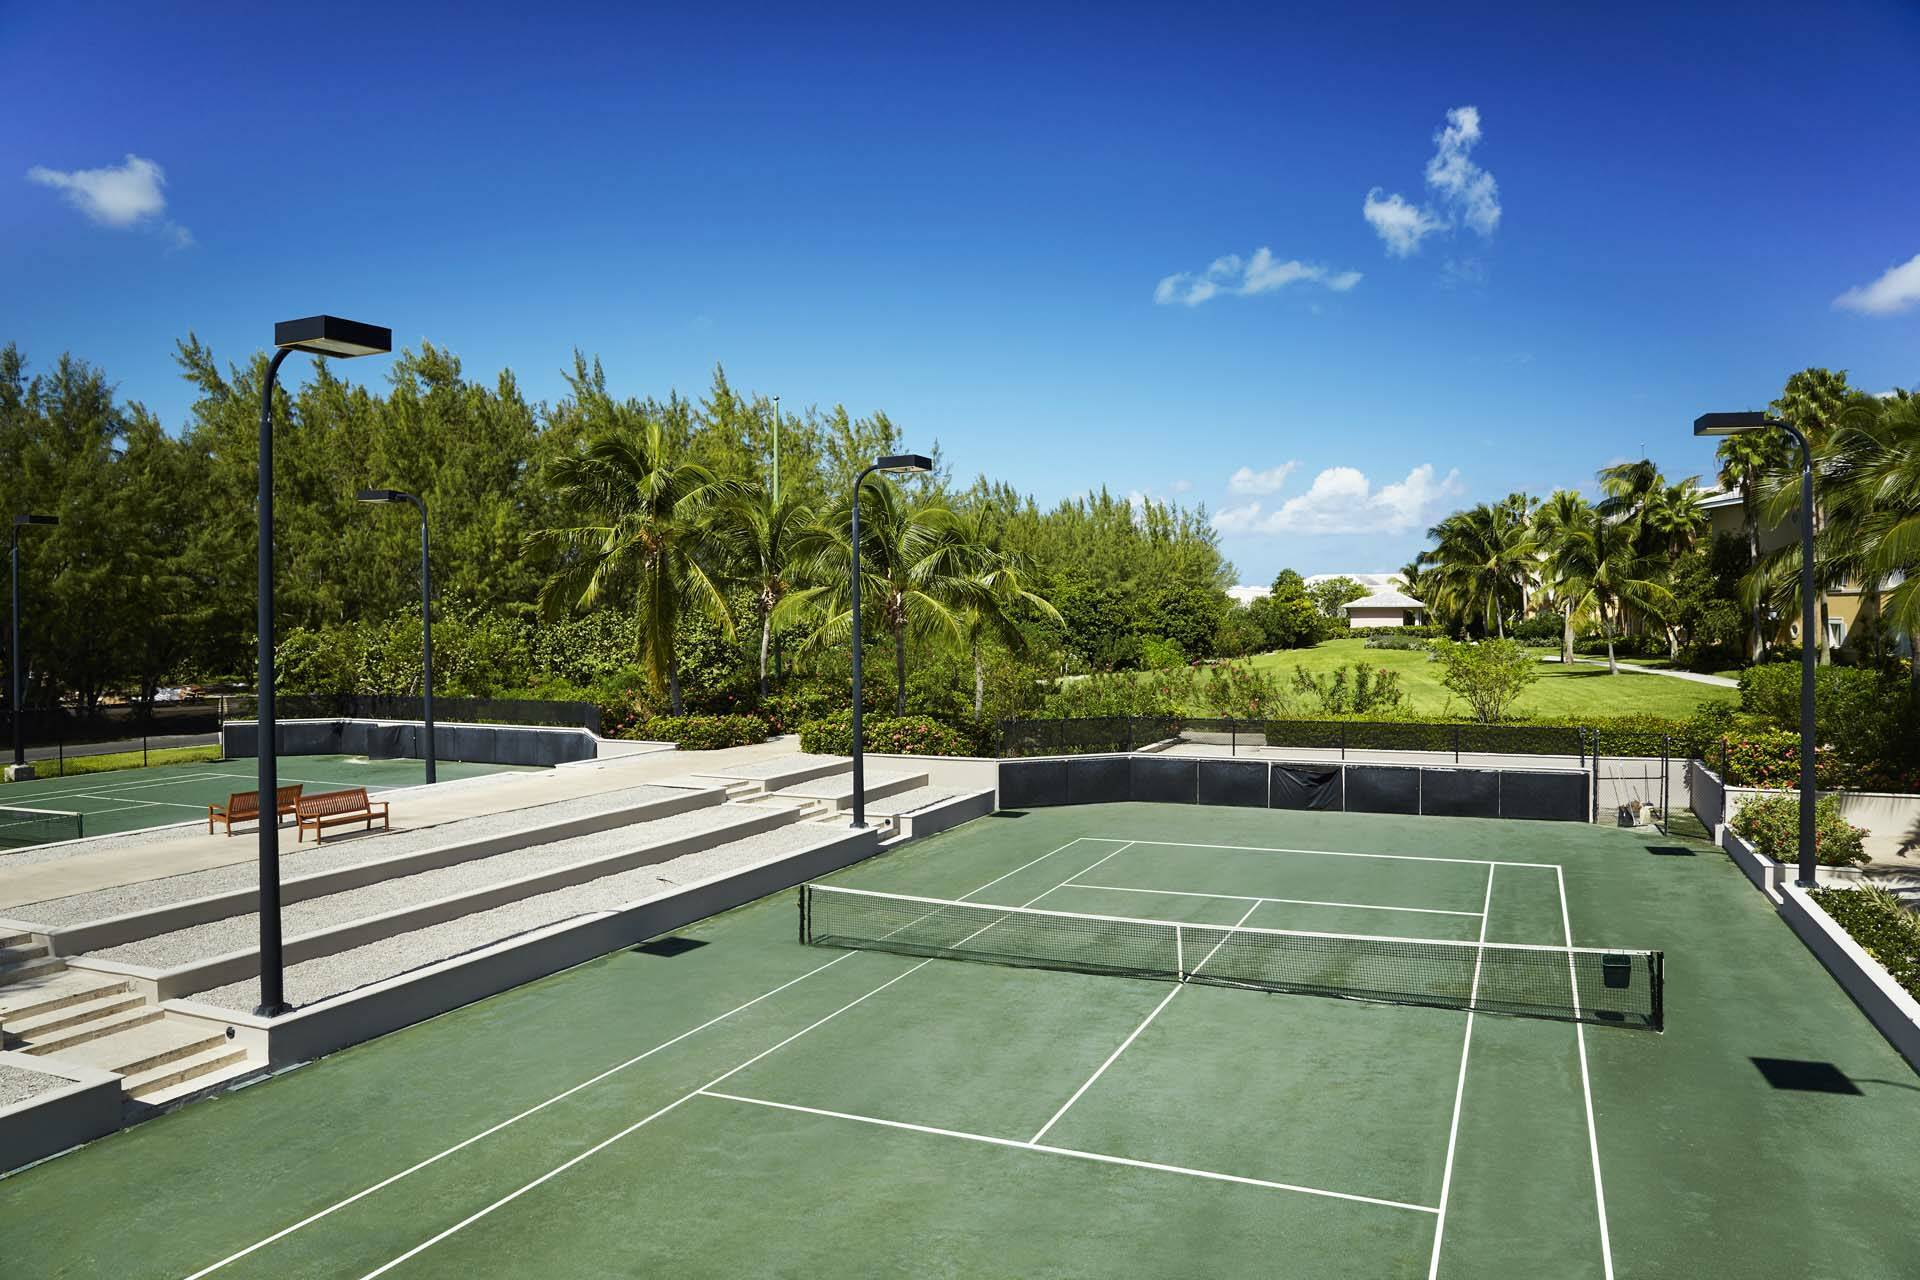 Sandals Emerald Bay Exuma Bahamas Tennis